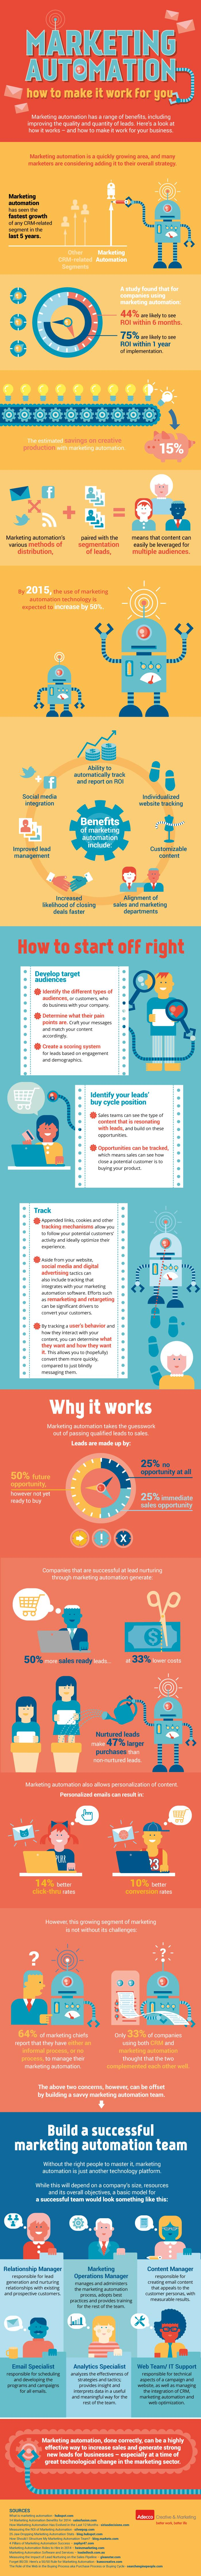 marketing-automation-tools-talent-infographic